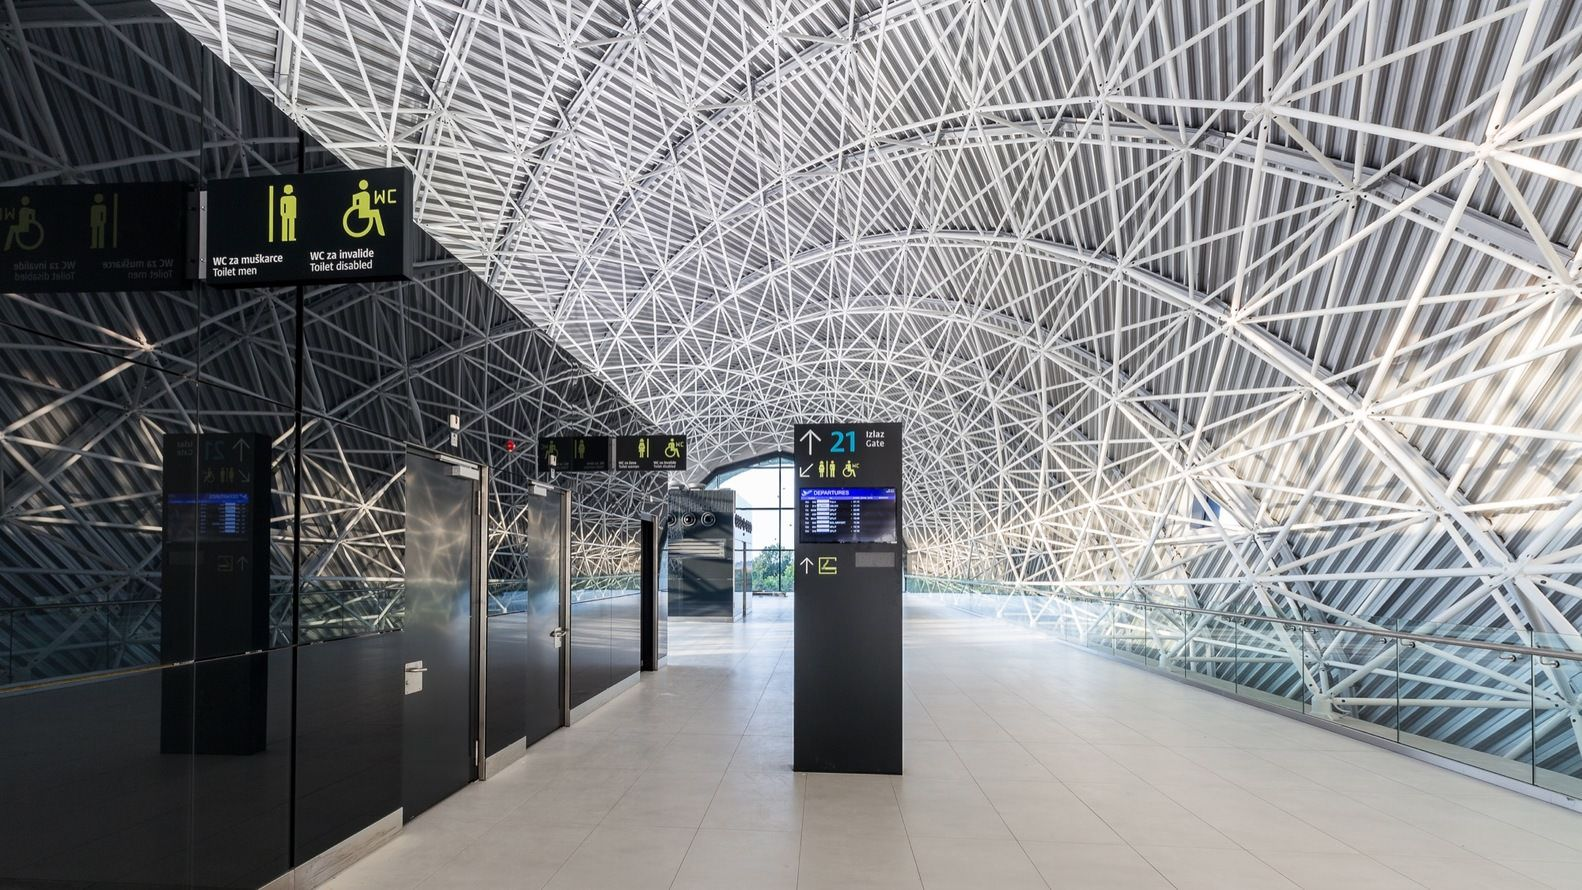 Architecture Zagreb International Airport Croatia 1582 890 Zagreb Architecture Building